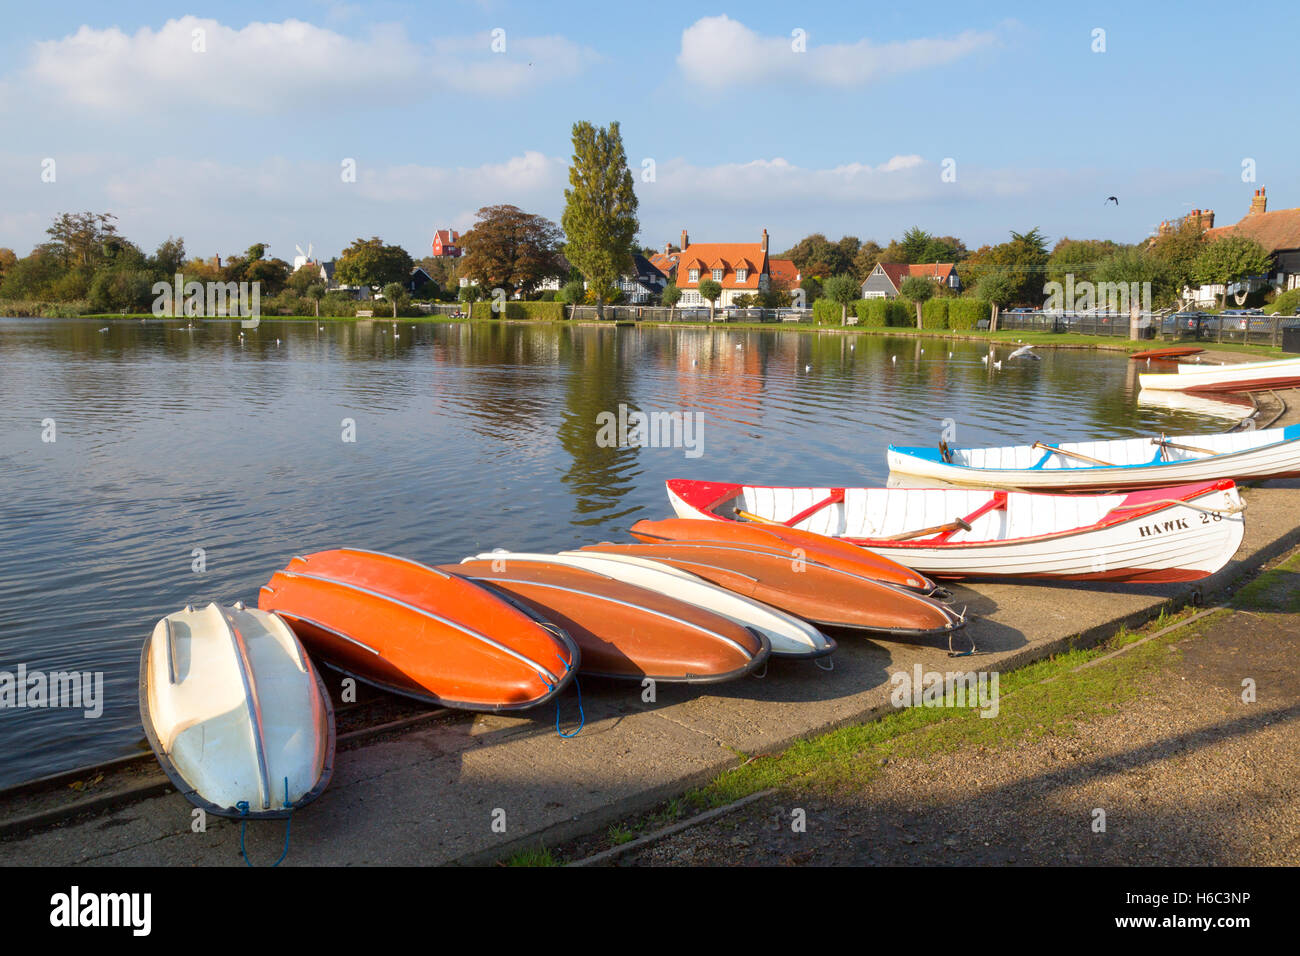 Boats at Thorpeness Meare, Thorpeness village, Suffolk, East Anglia England UK - Stock Image